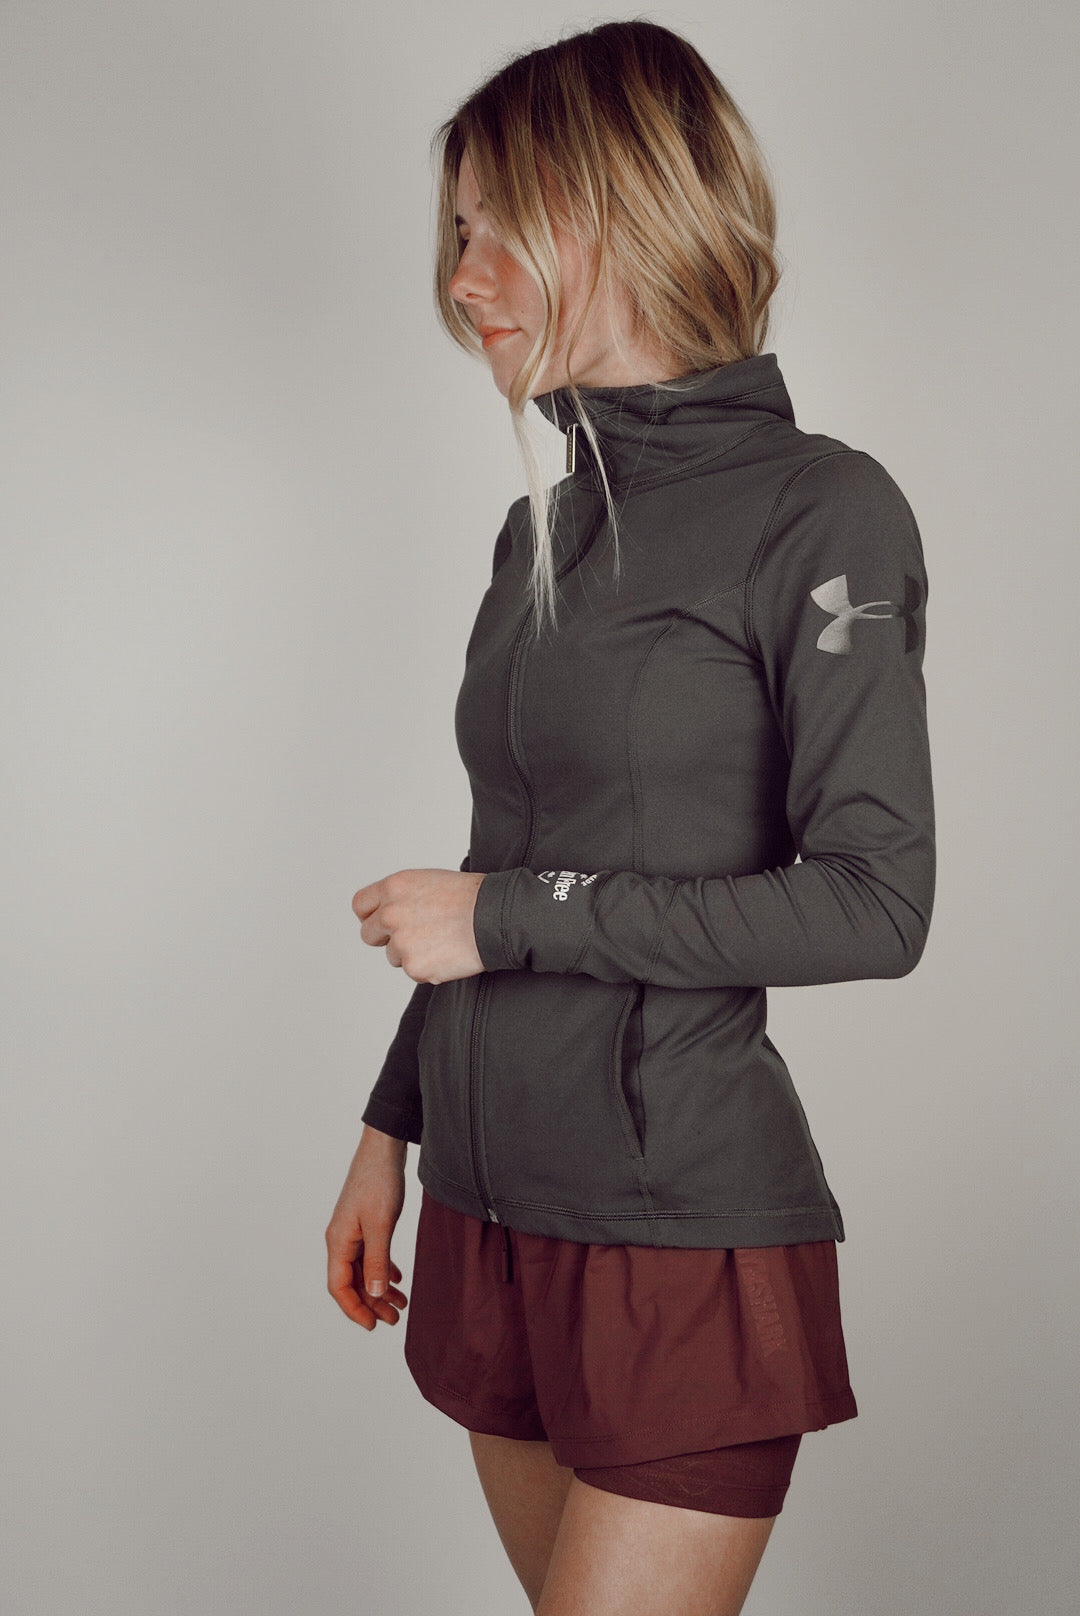 Under Armor Zip Up